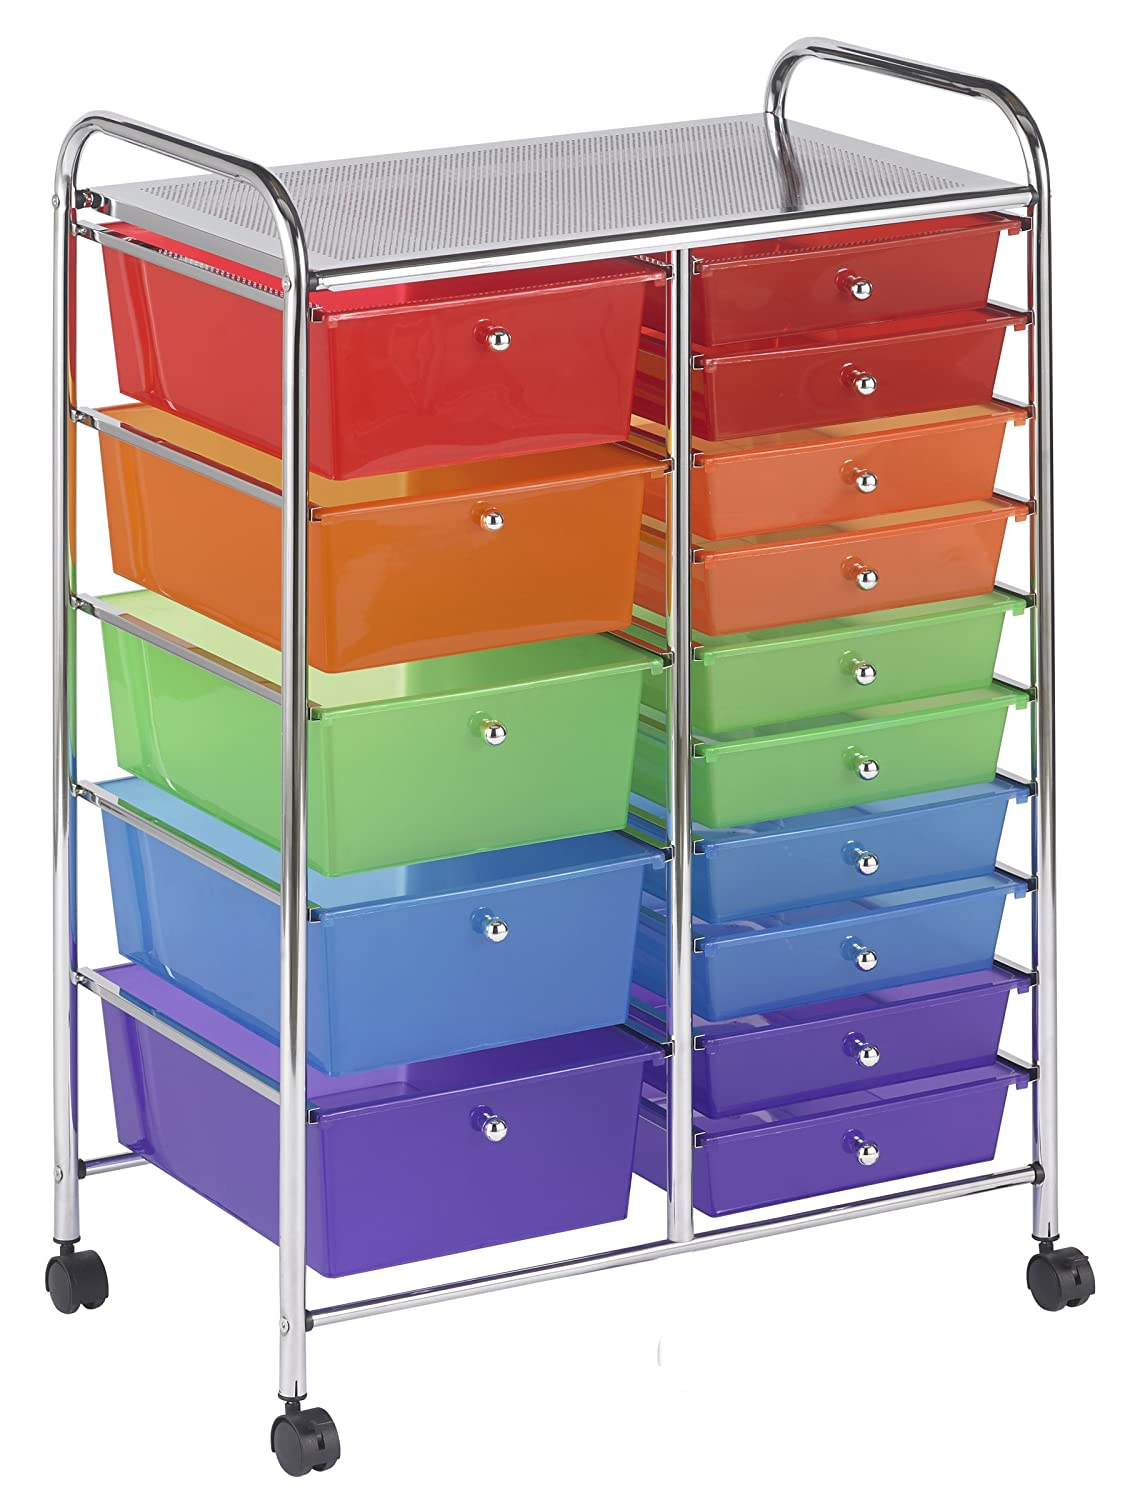 stylish rolling organizer with colored drawers